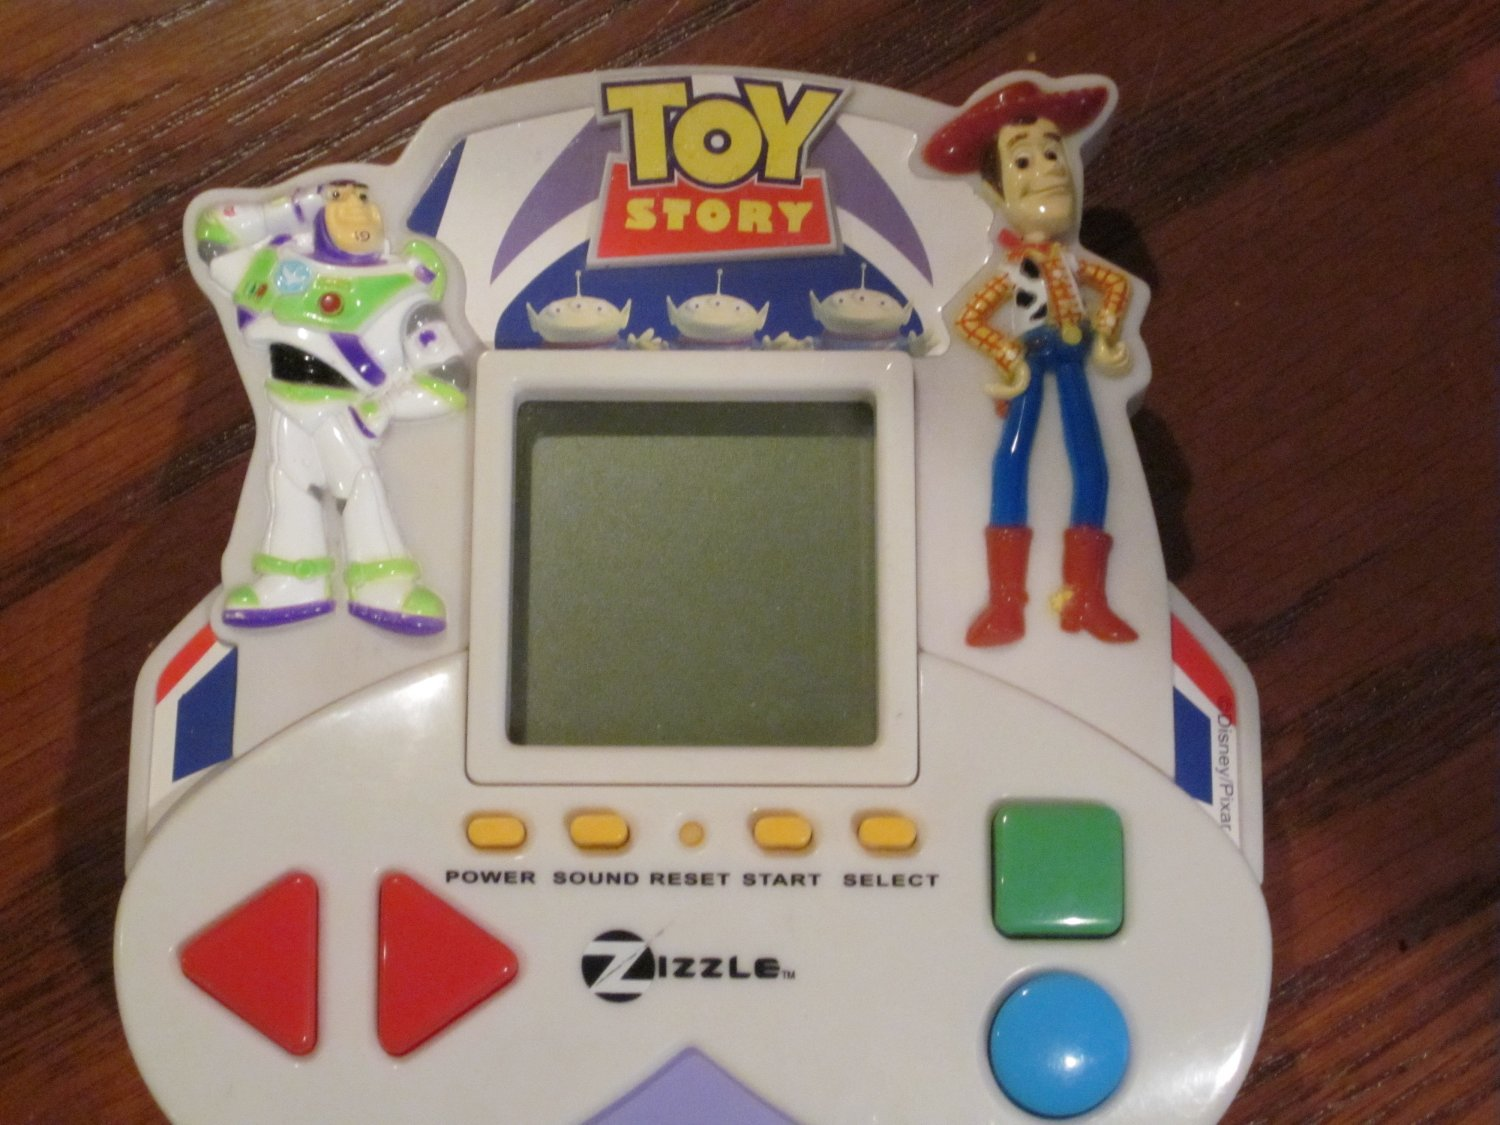 Zizzle Toy story Electronic Handheld Toy